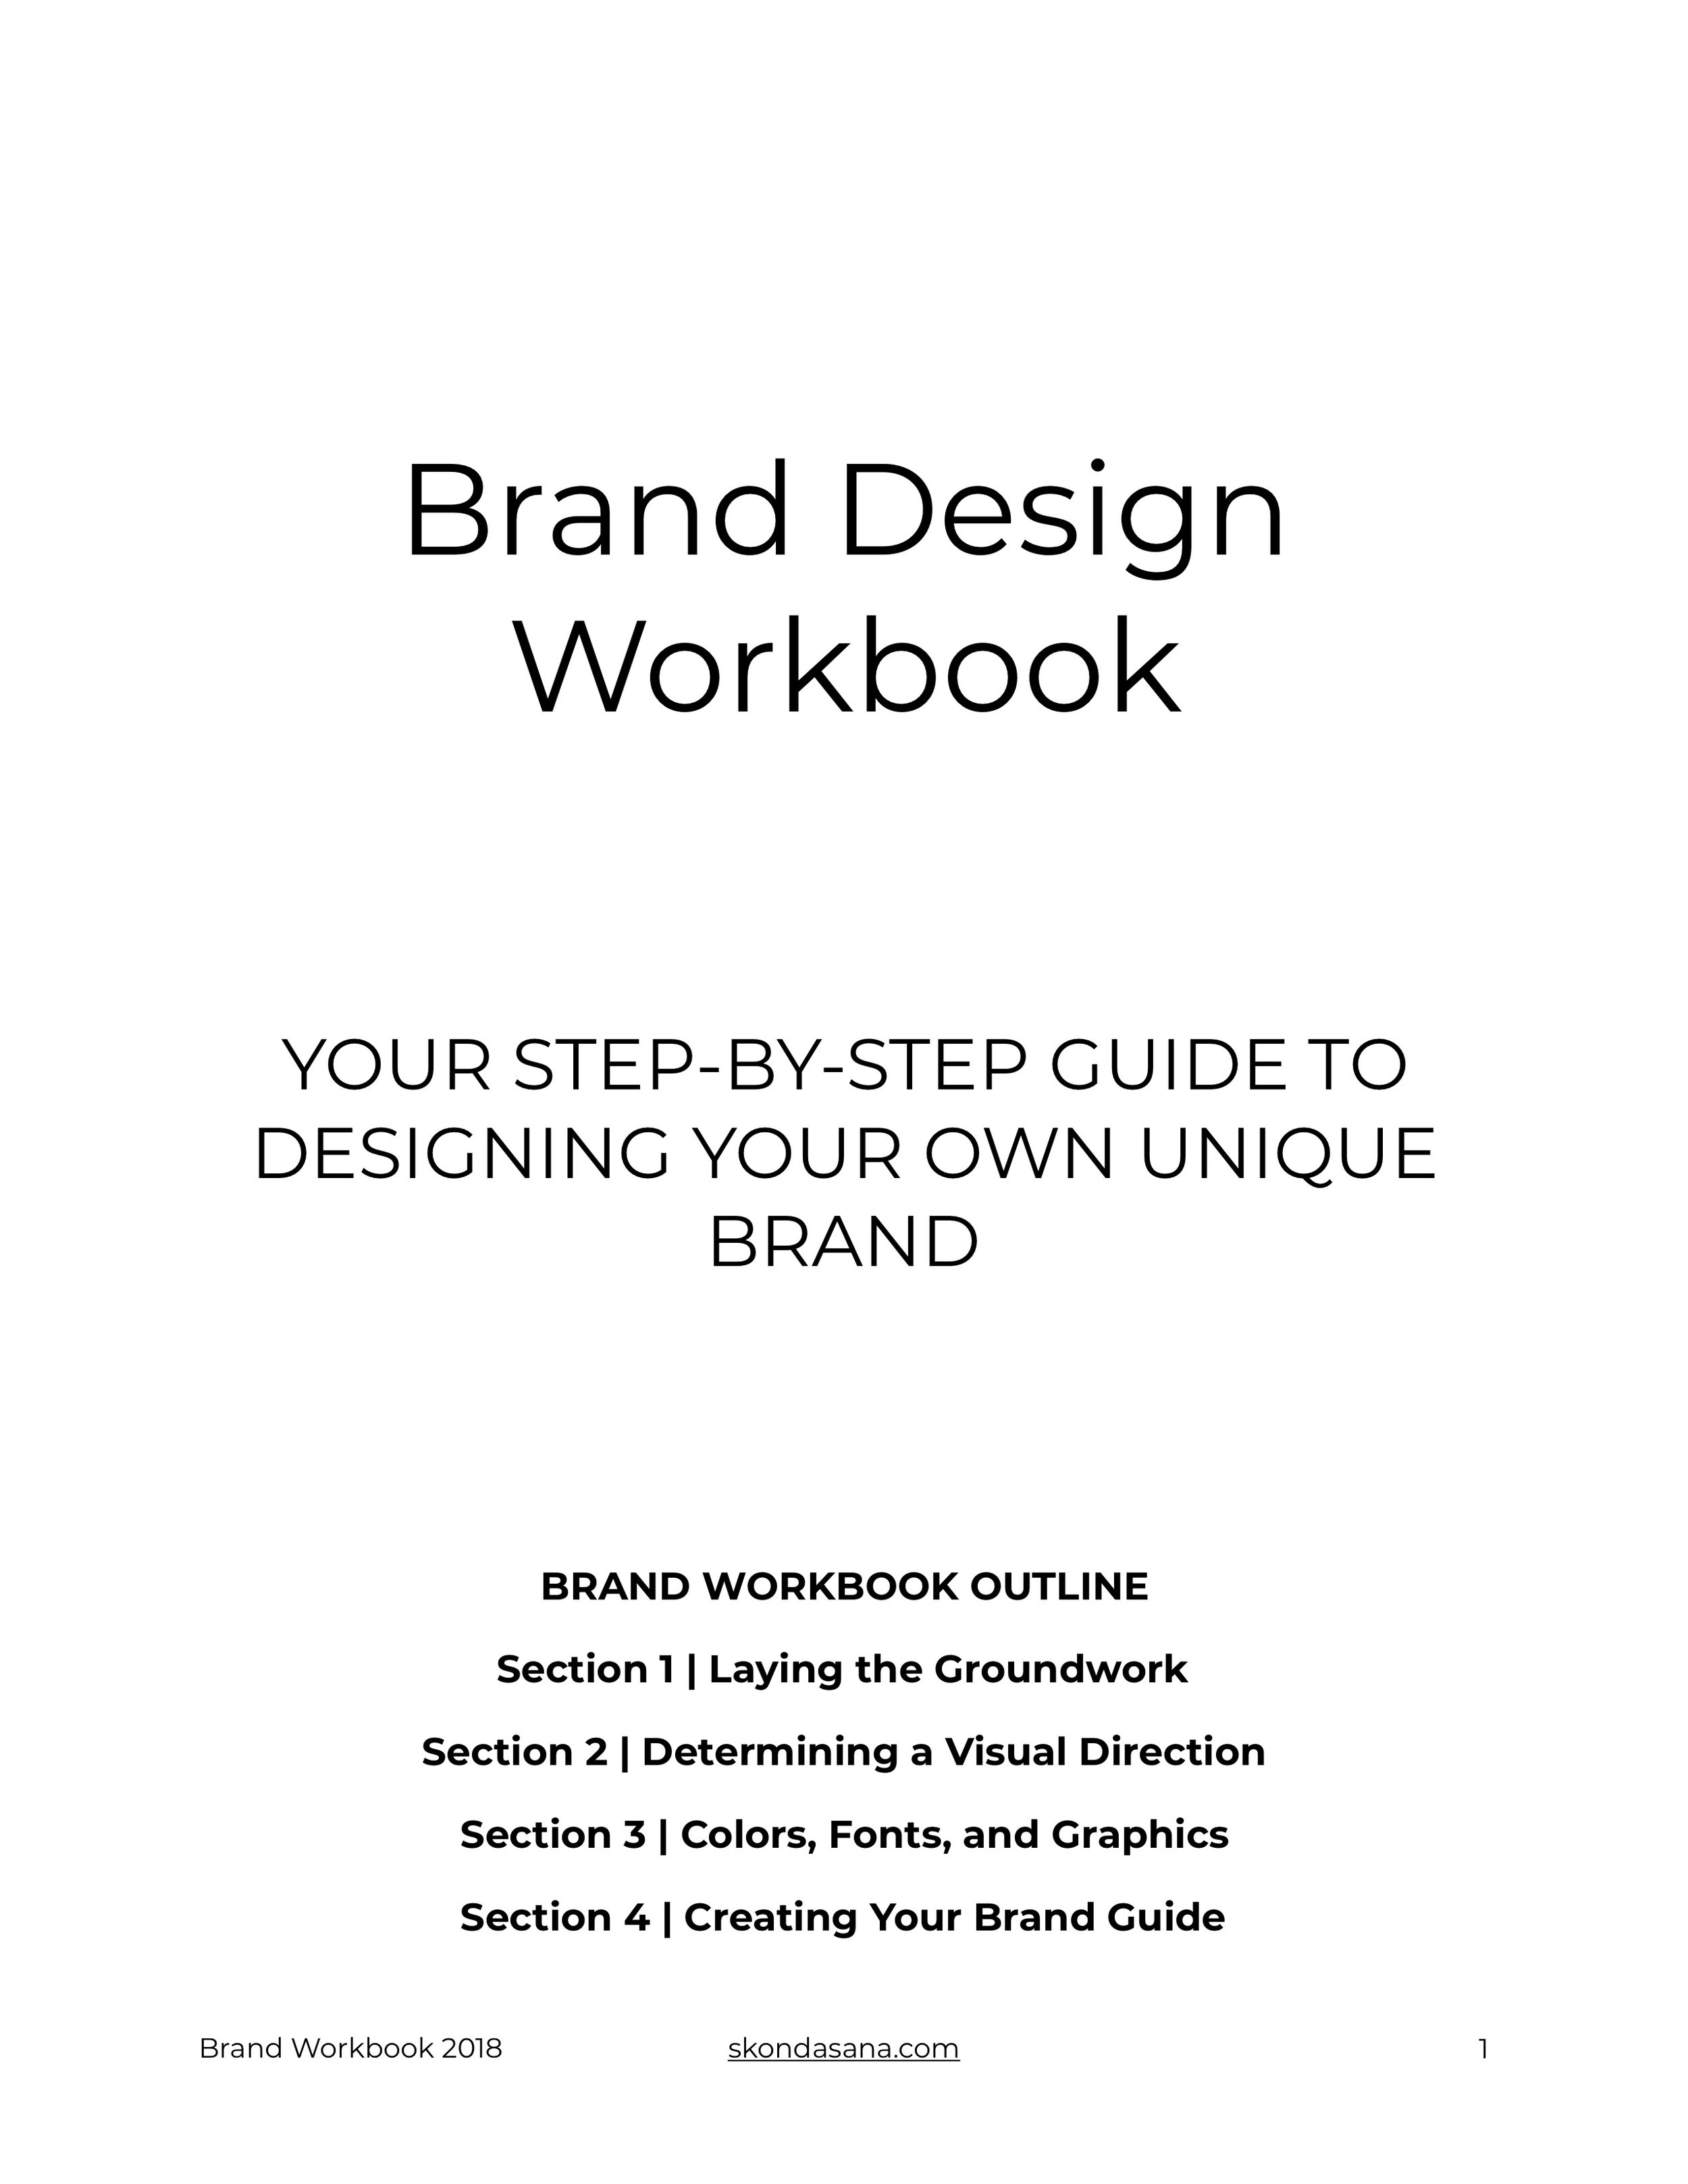 Brand Design Workbook c. 2018.jpg